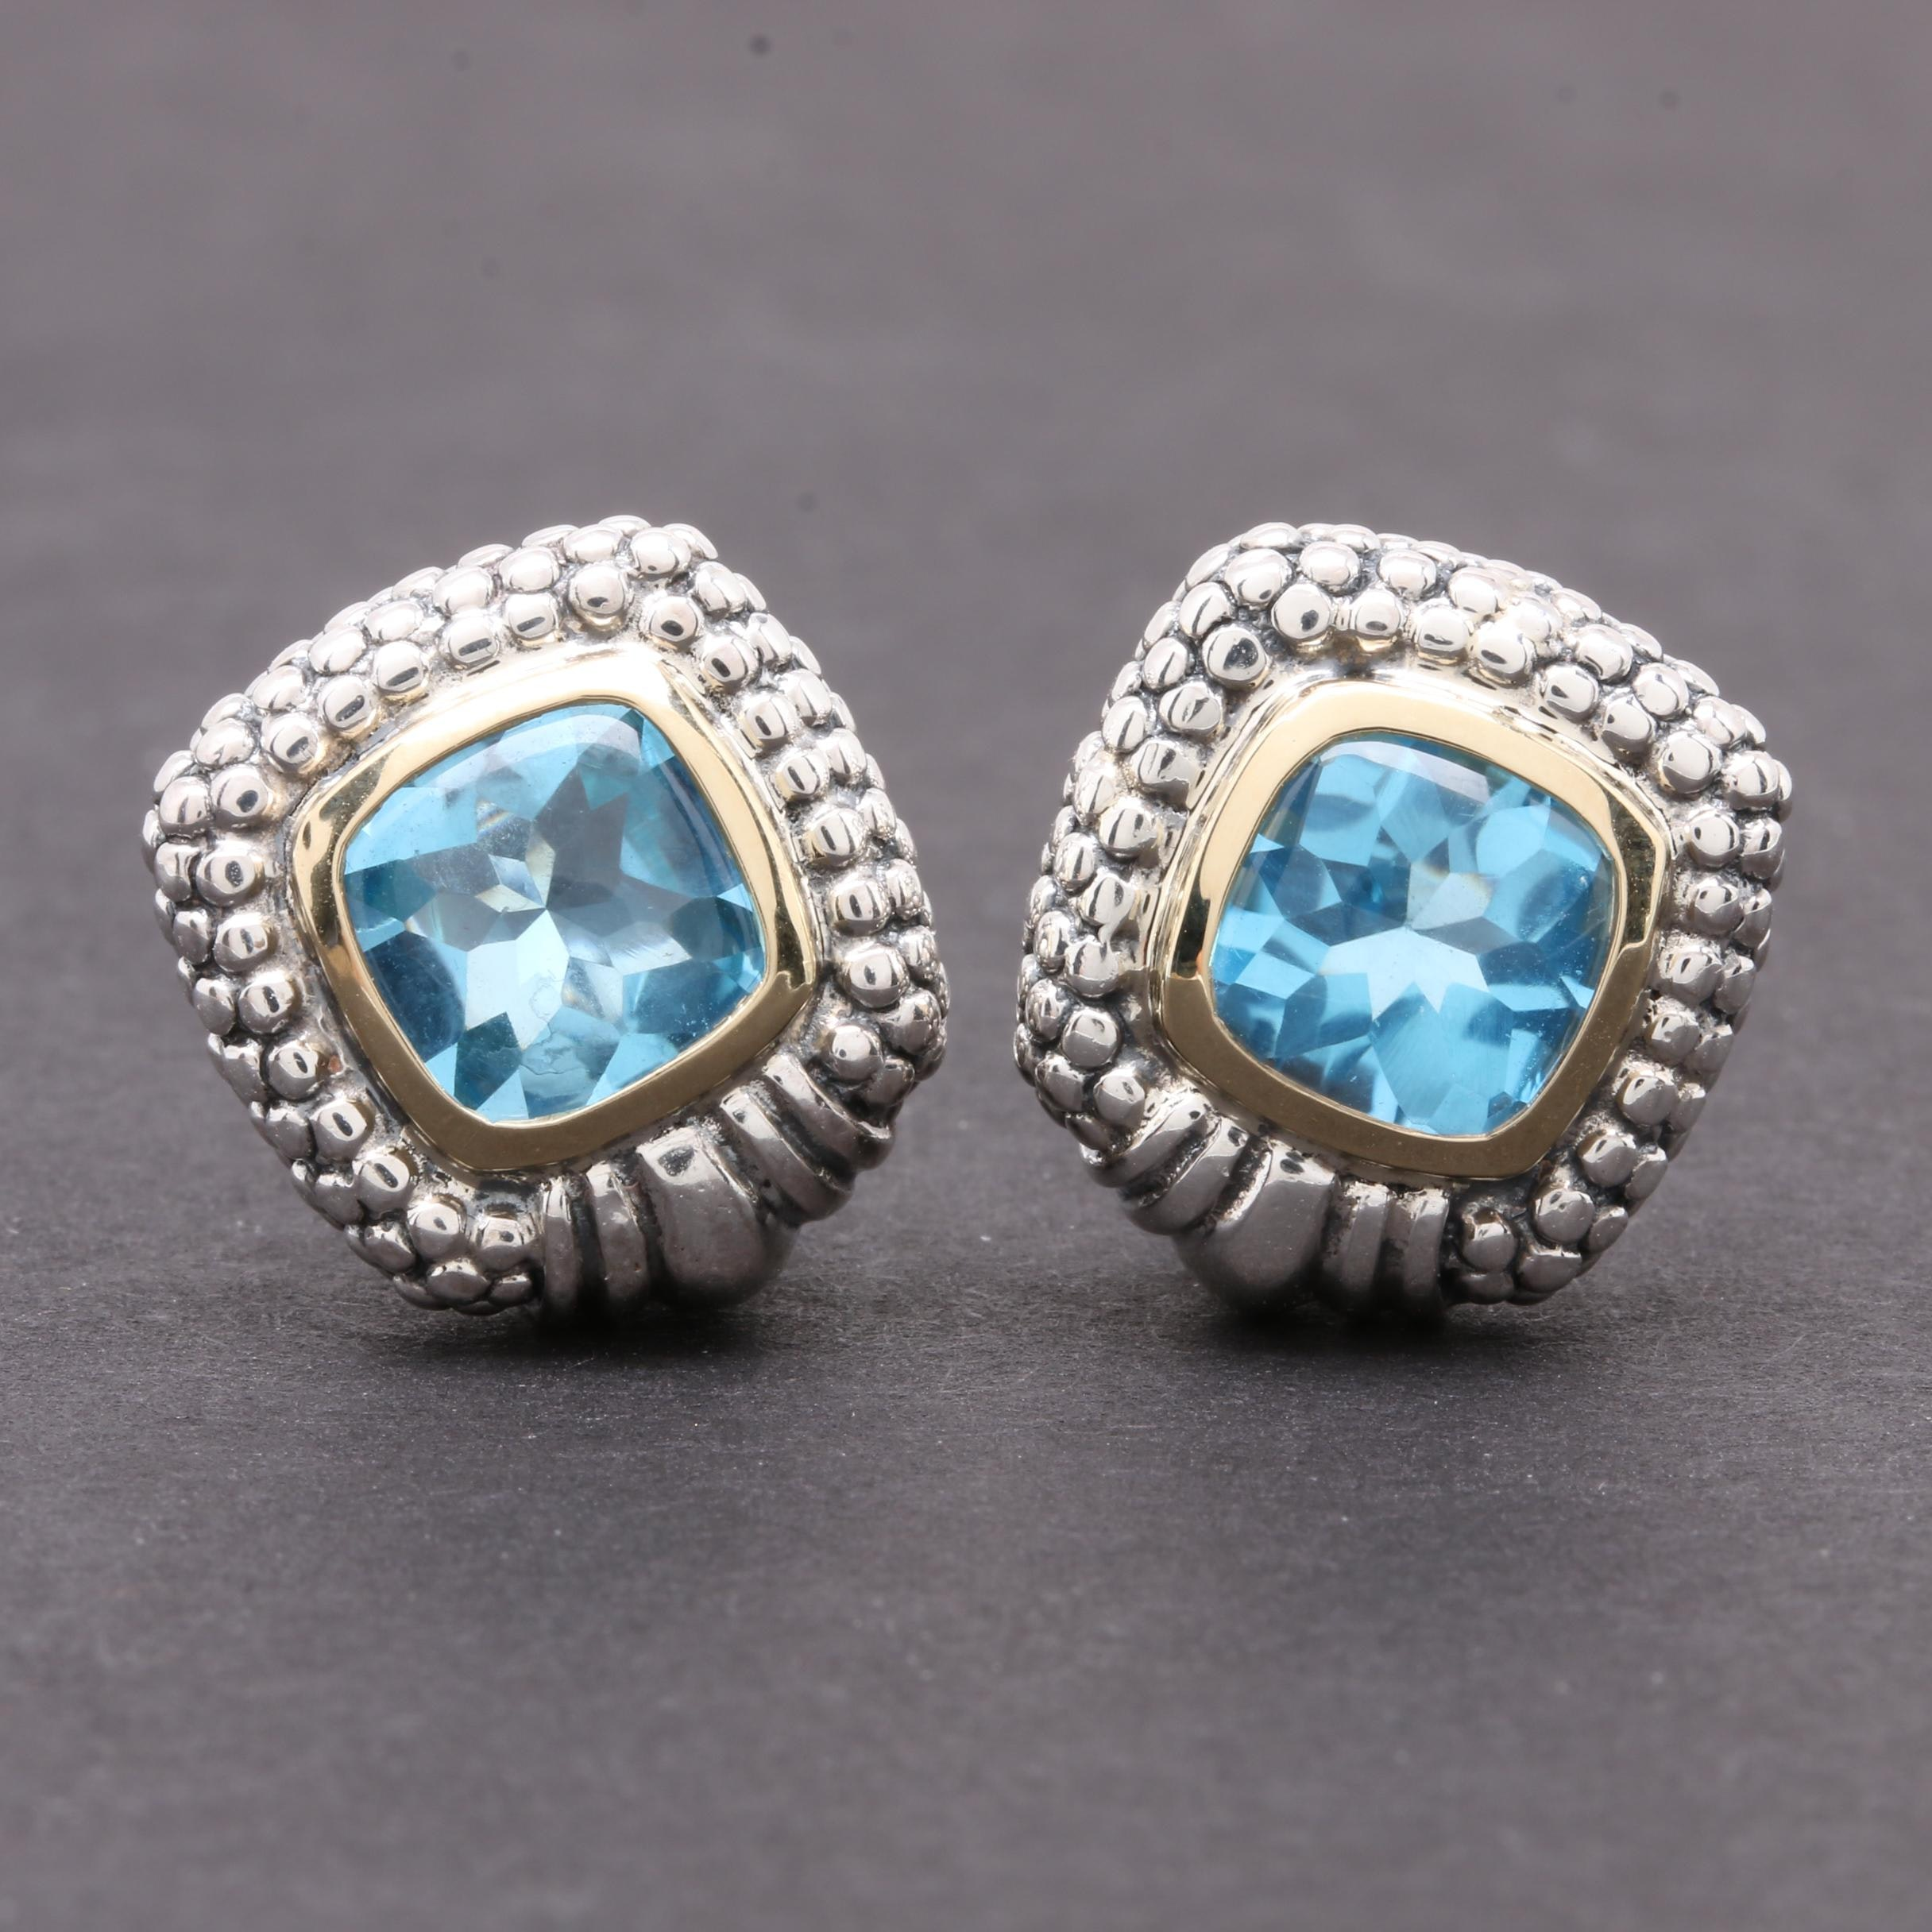 Sterling Silver Topaz Earrings with 14K Yellow Gold Accents